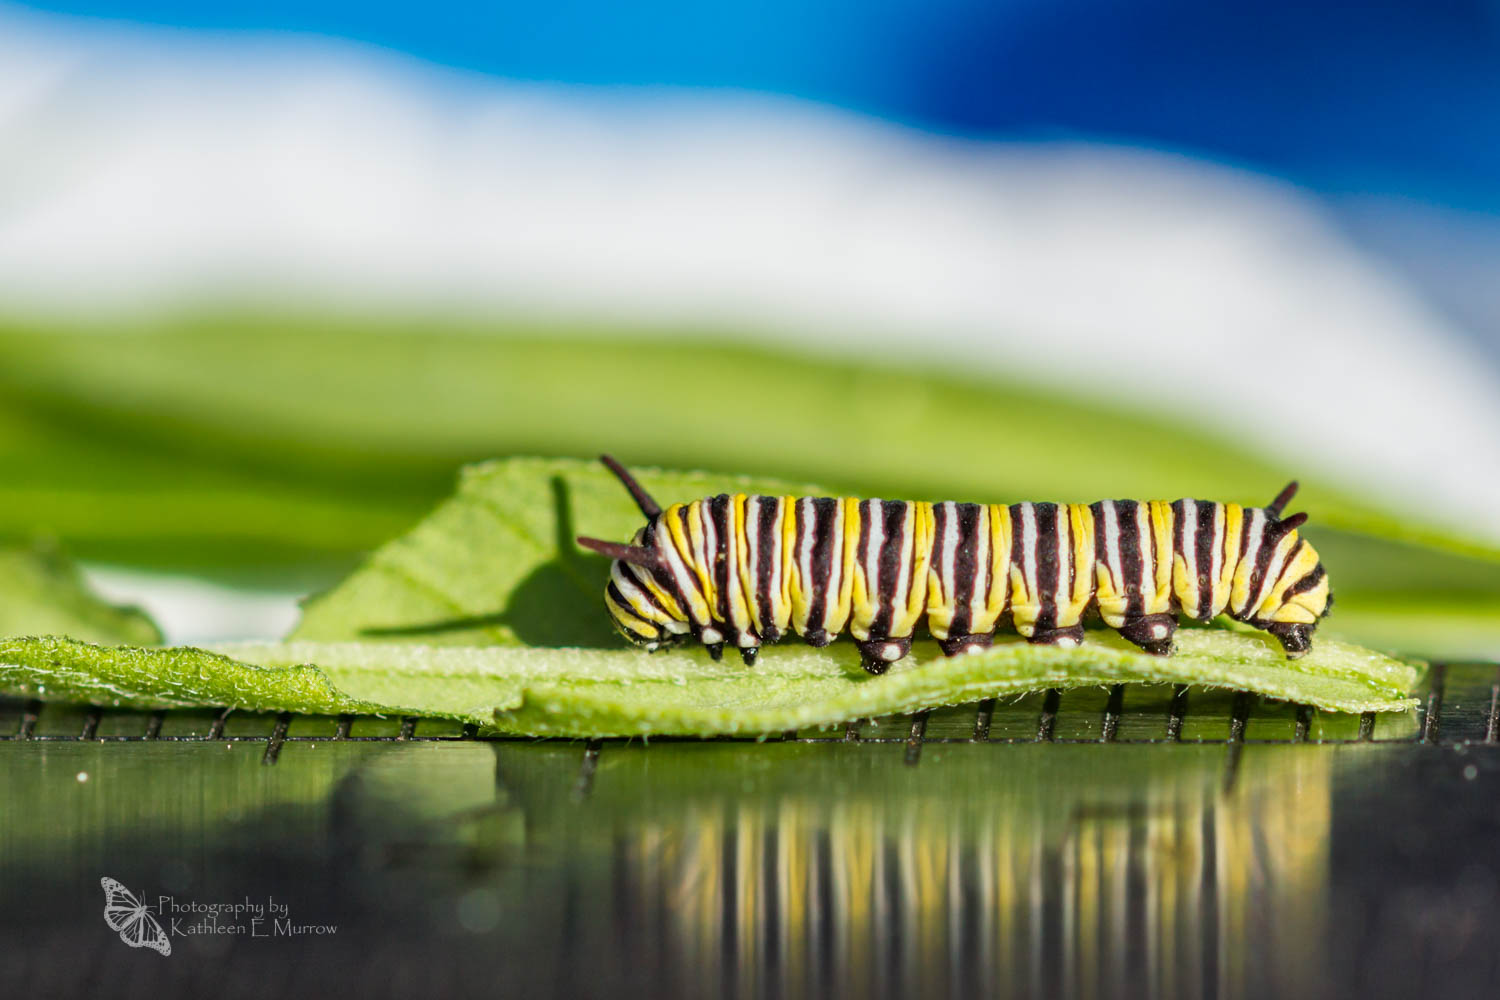 A third instar caterpillar of the monarch butterfly on a leaf, its black, white, and yellow stripes reflected in a metal ruler